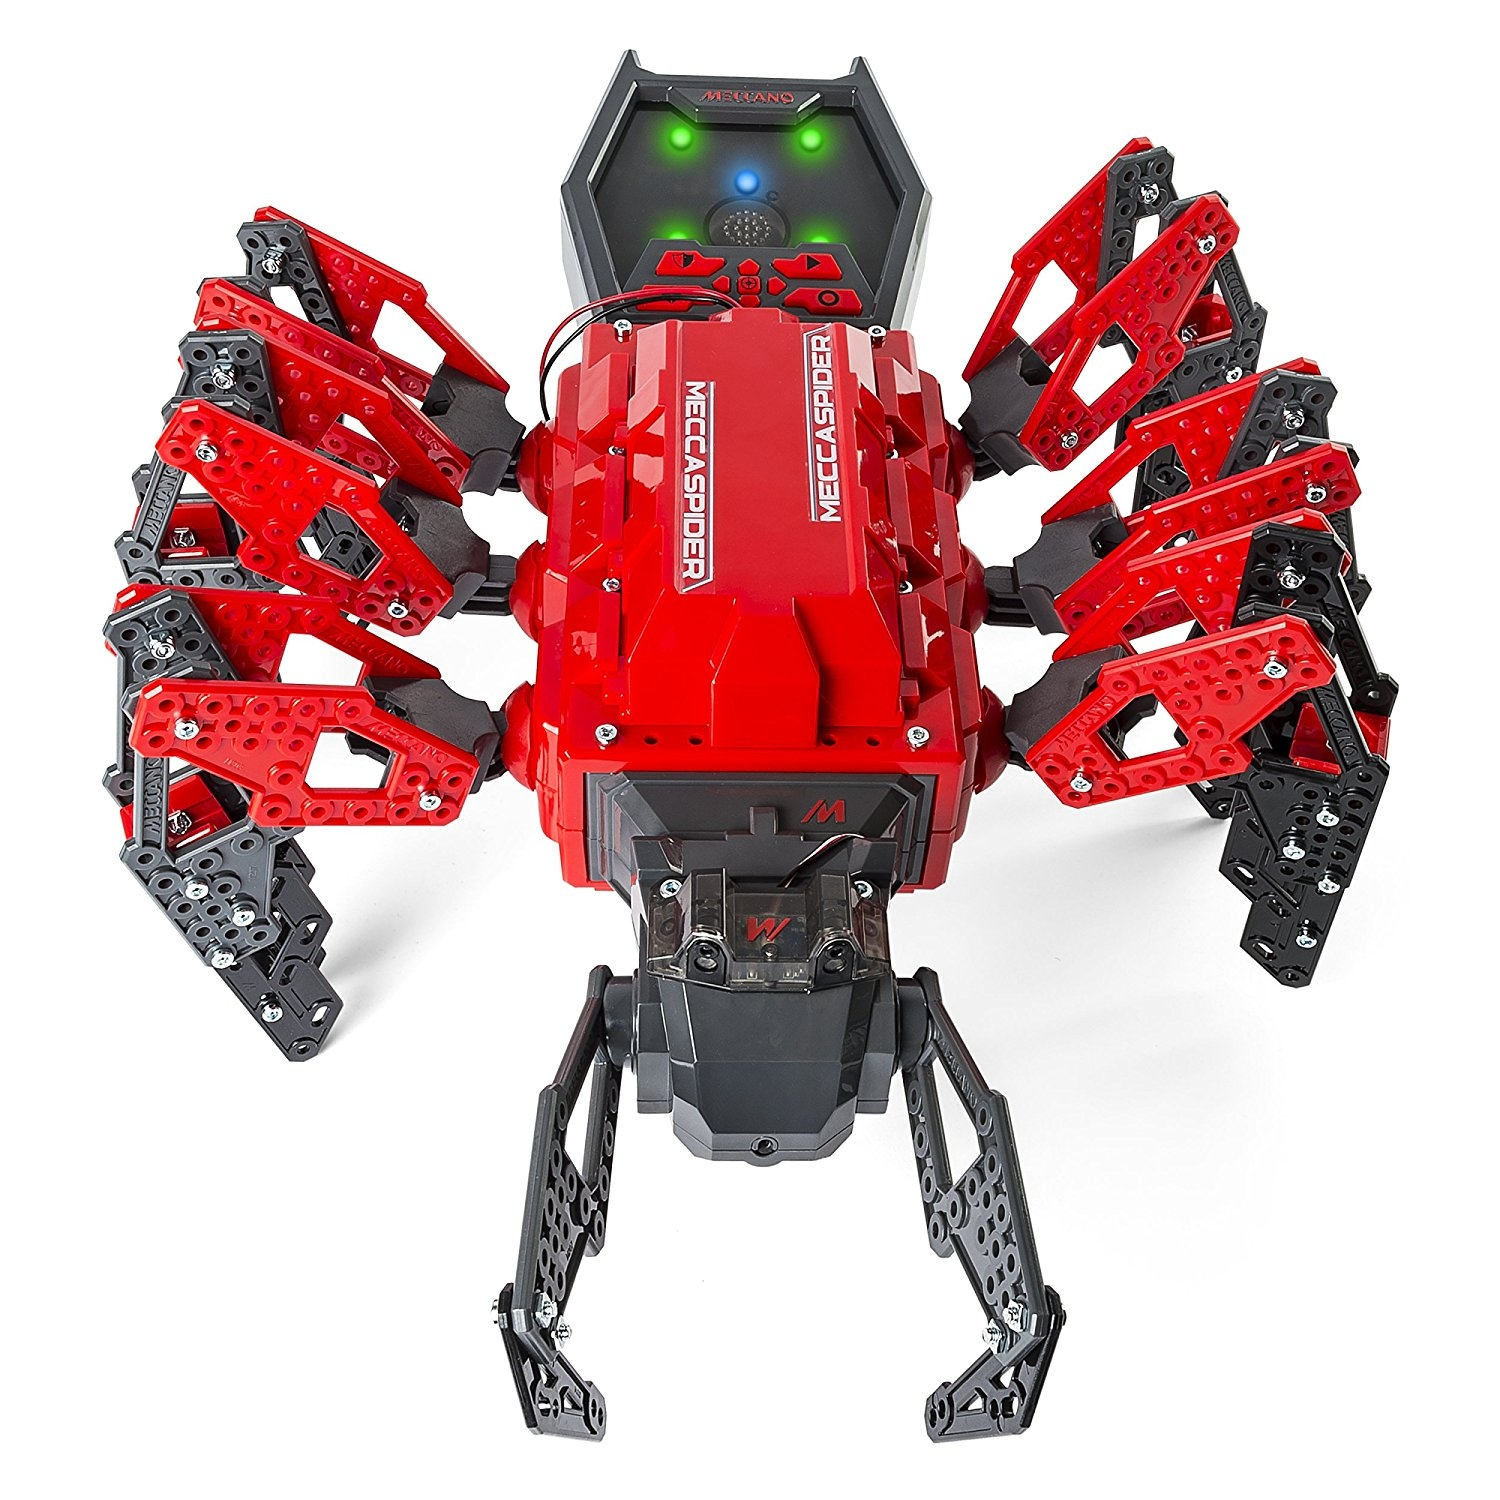 Best Meccano Sets And Toys For Kids : Meccaspider robot kit for kids to build best offer